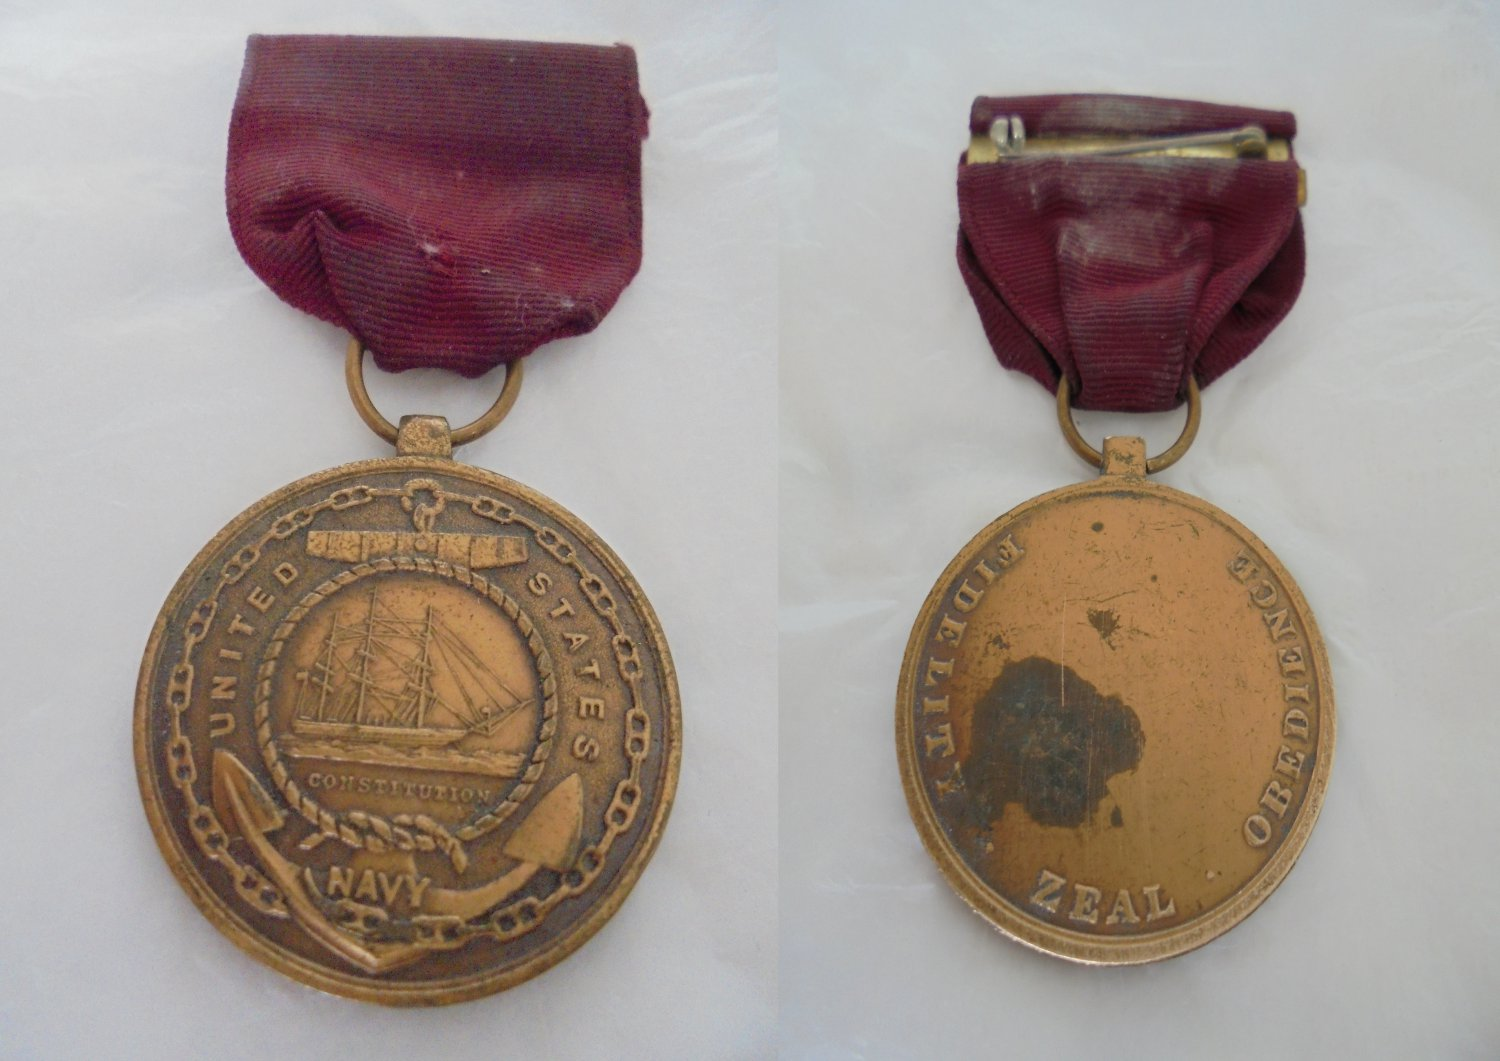 Bronze MEDAL UNITES STATES Navy Constitution Military 1970s